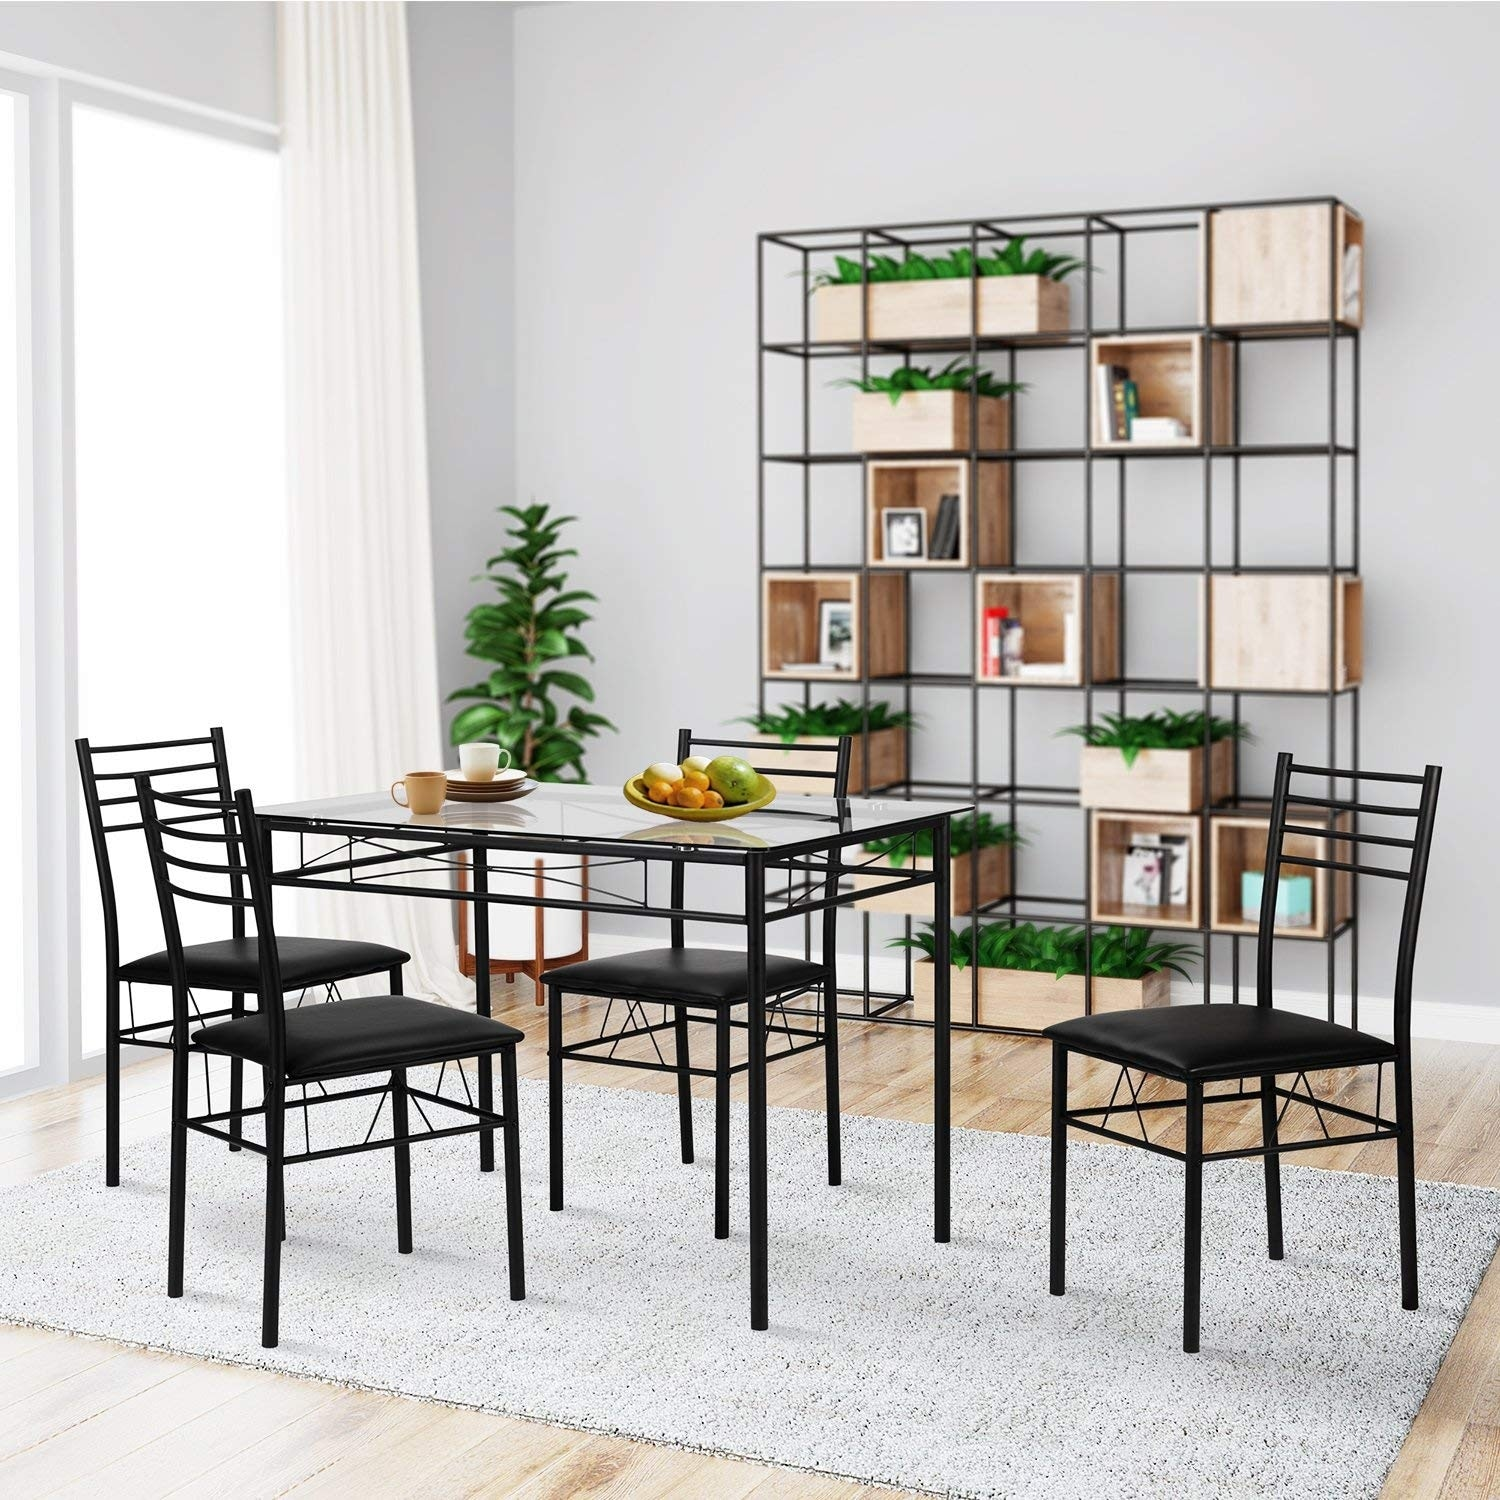 Shop VECELO Glass Dining Table Sets with 4 Chairs Kitchen Table sets - Free  Shipping Today - Overstock - 13023443 d127d8c7c